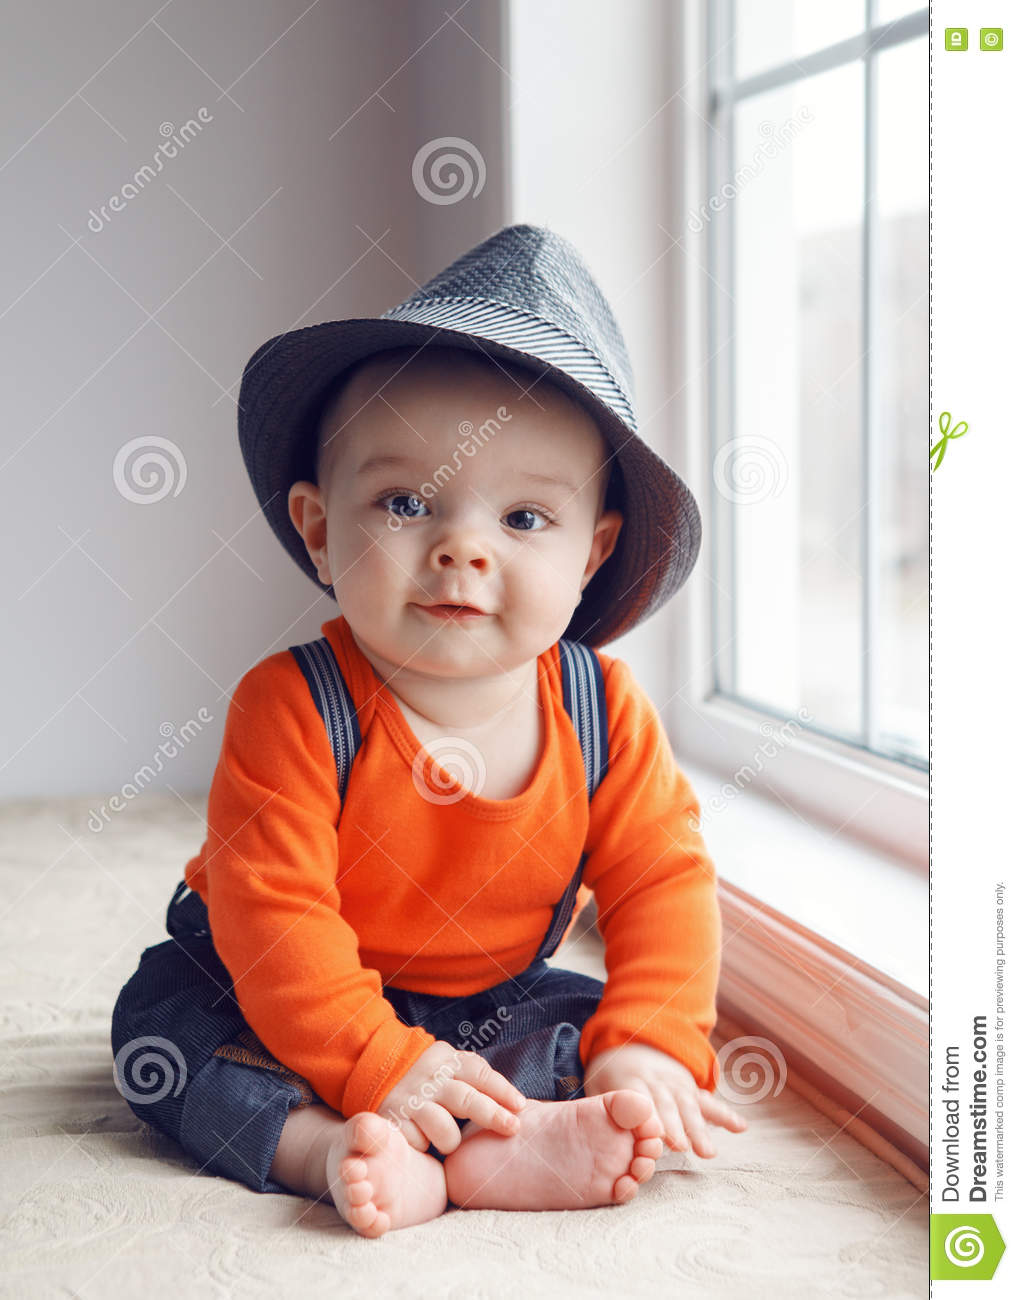 cb2c006610861 Portrait of cute adorable stylish Caucasian baby boy with black eyes in  hat